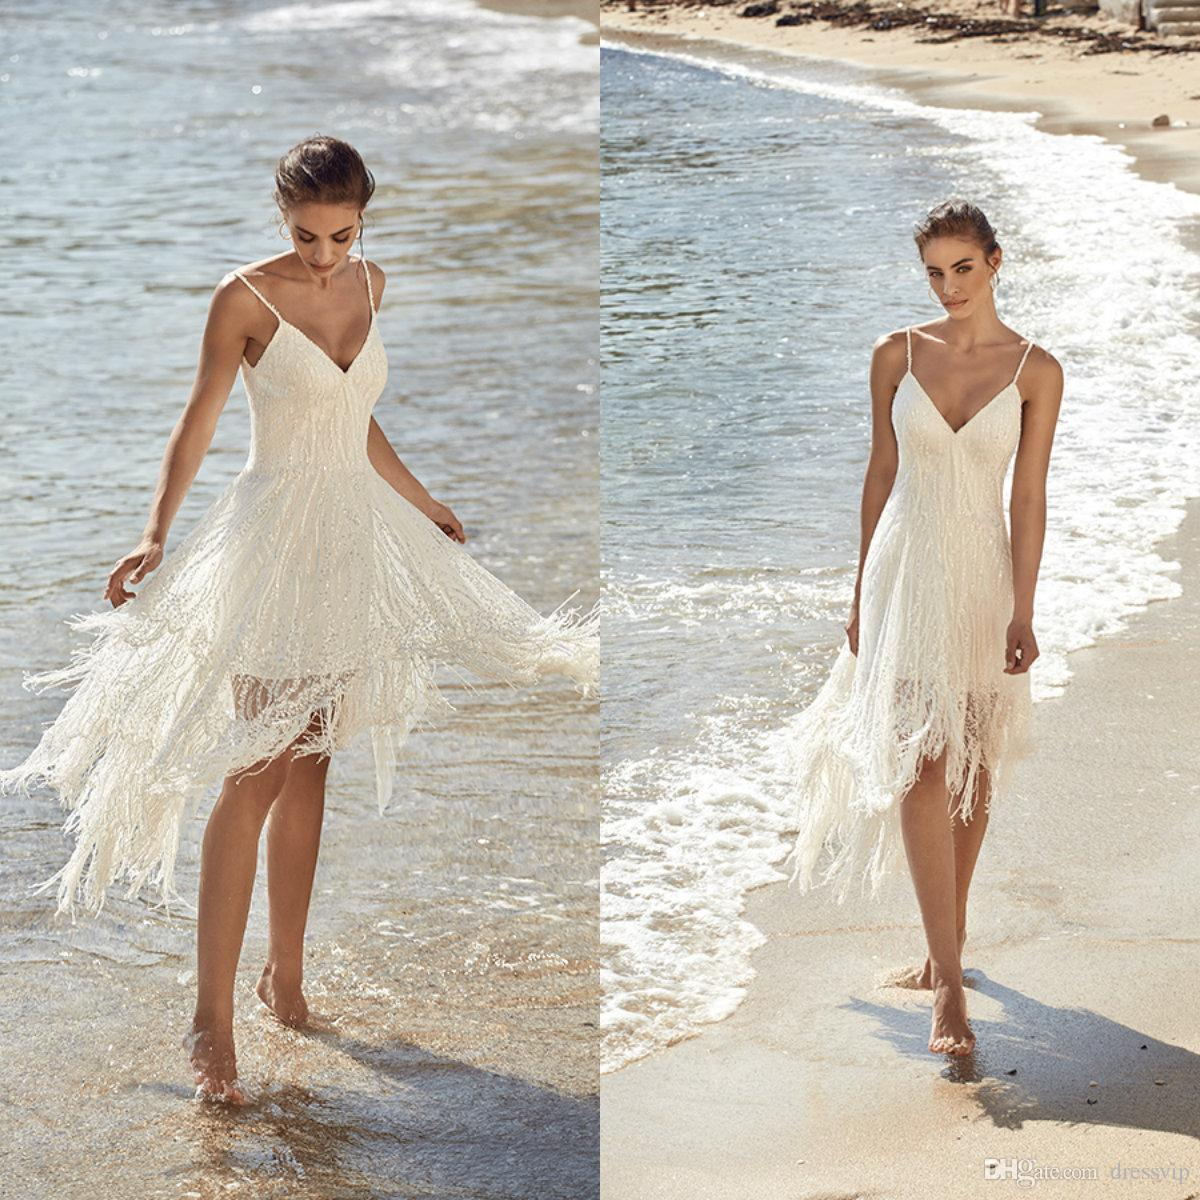 shoulder neckline beach wedding dresses